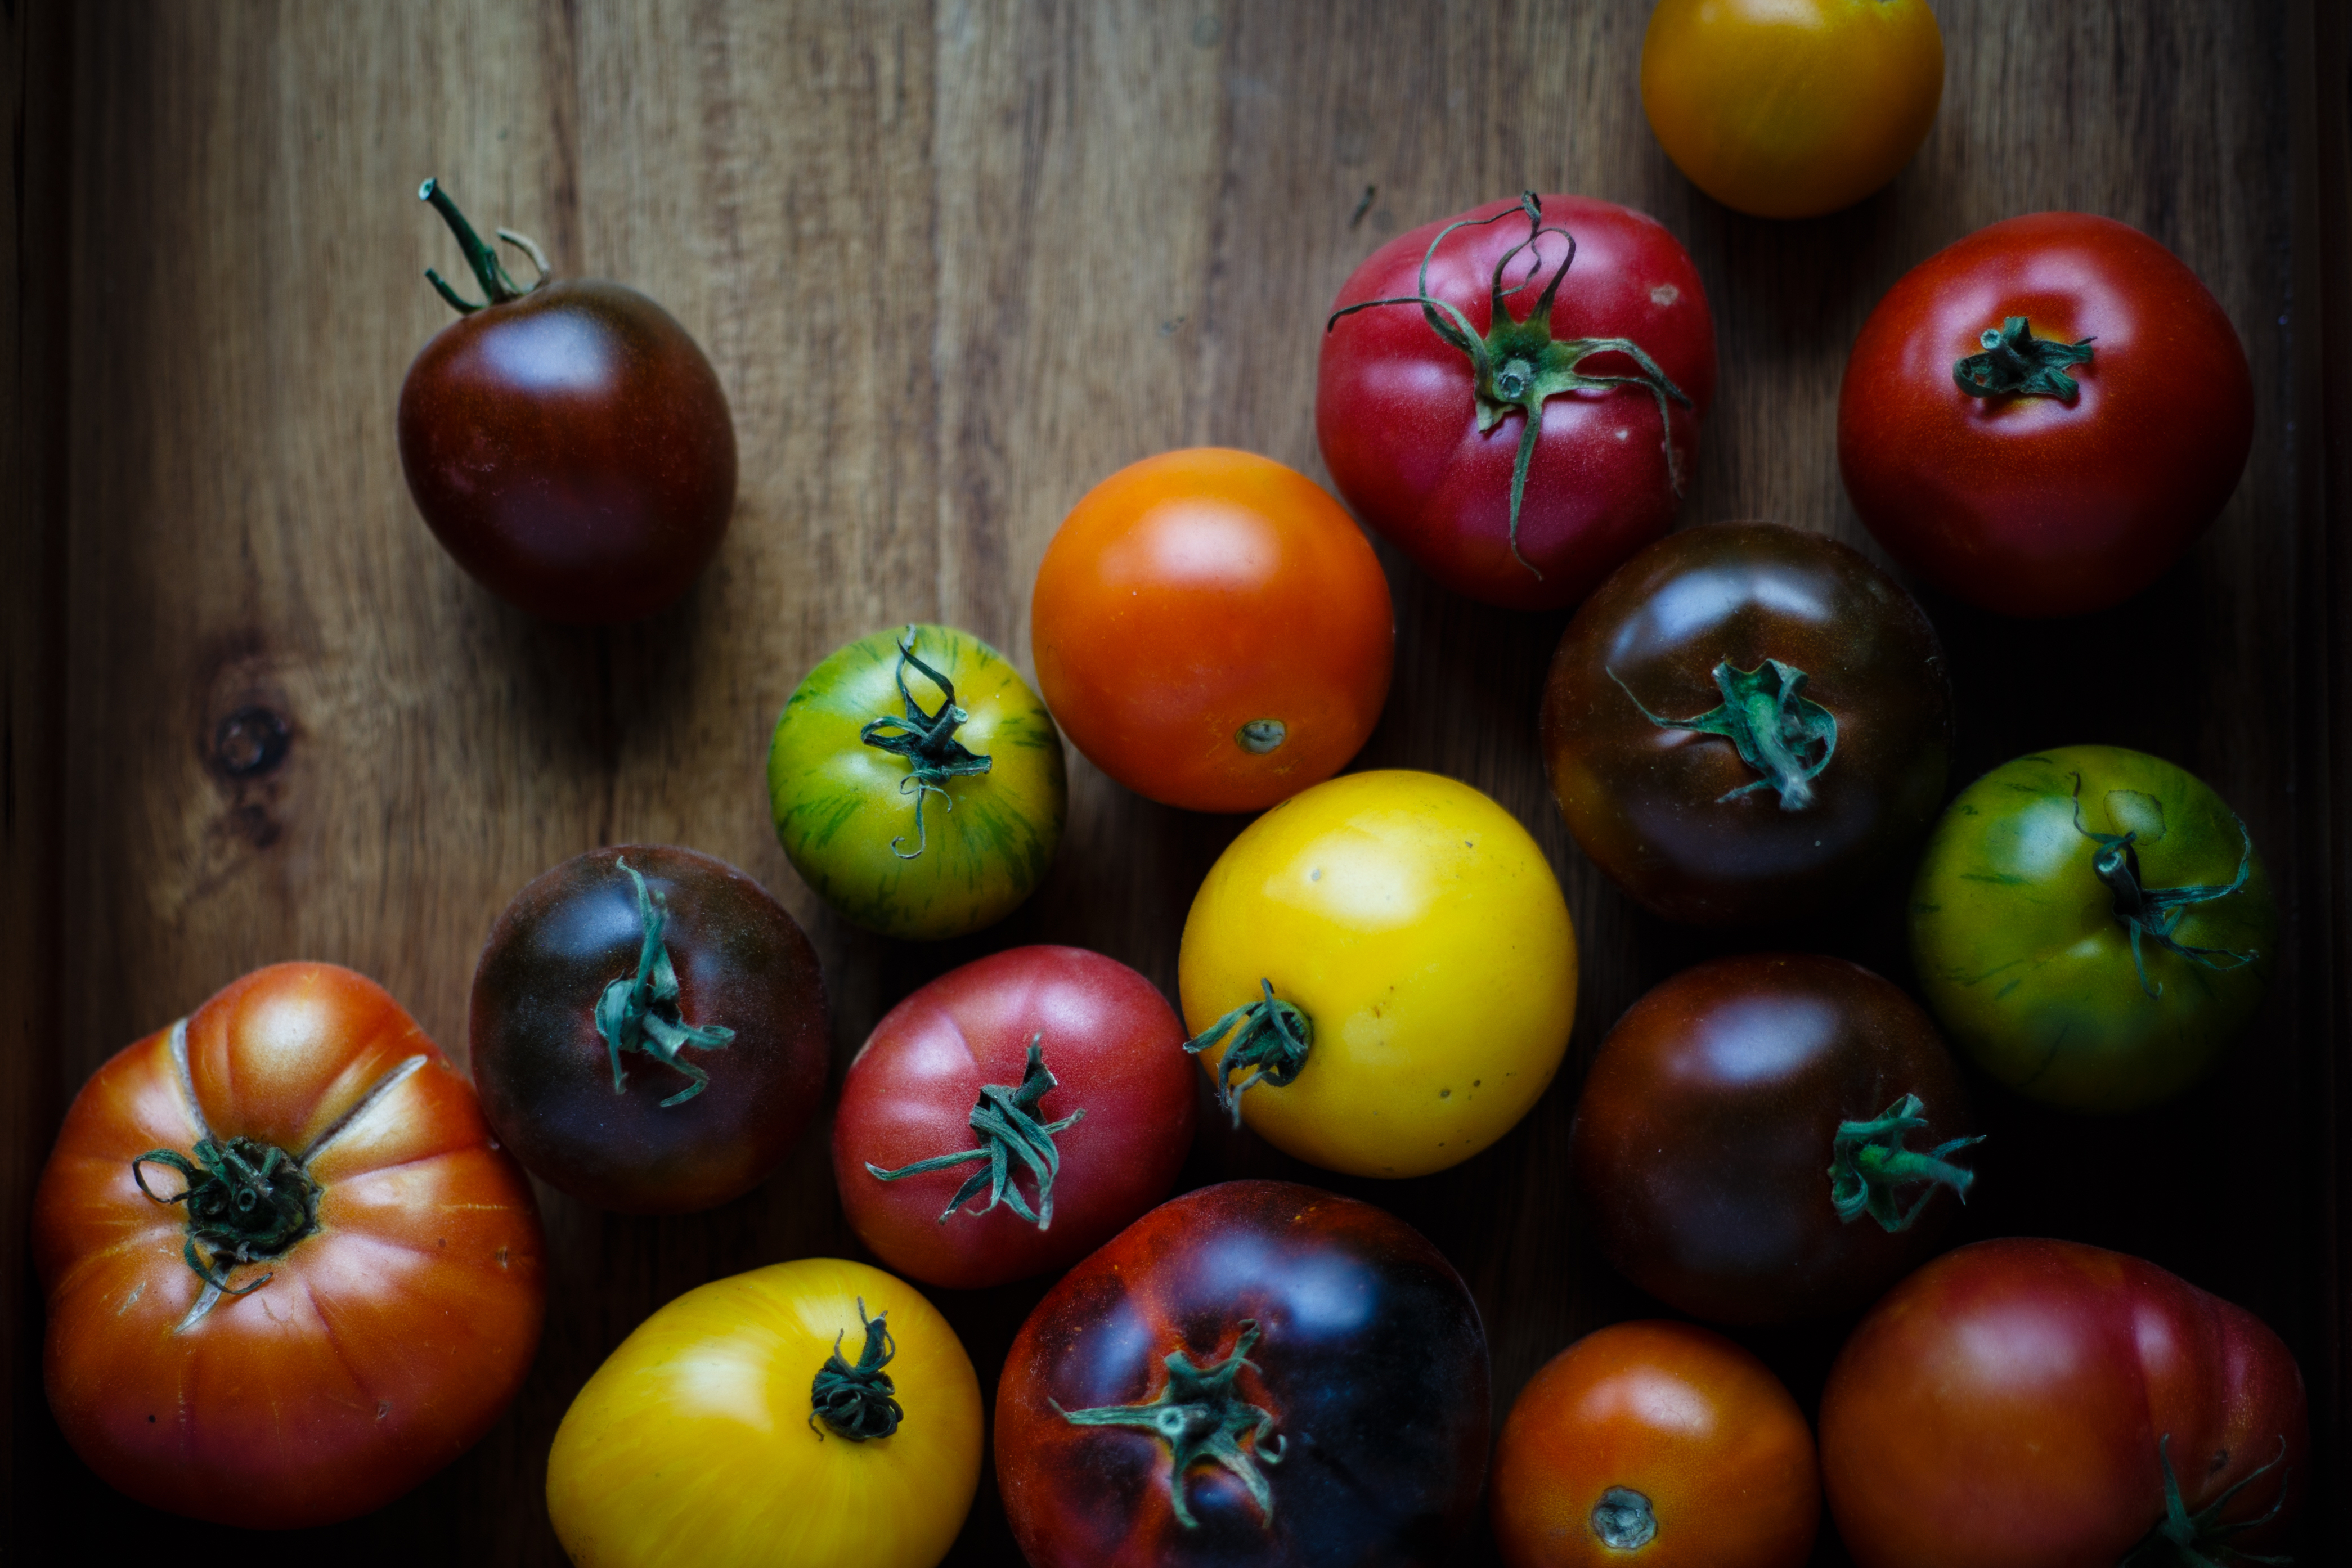 TOMATOES: A GLUT!!!